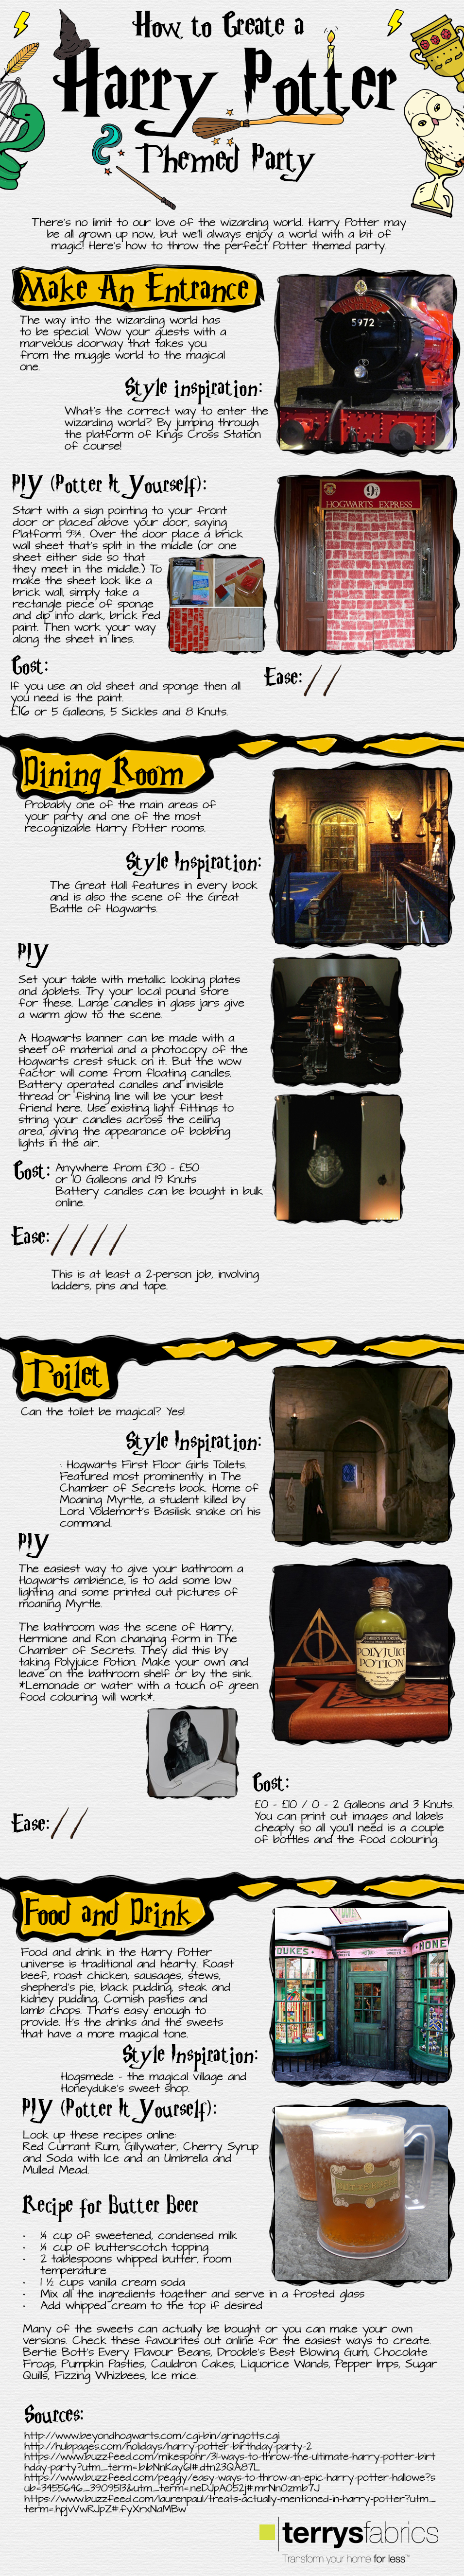 DIY Harry Potter Themed Party - Infographic